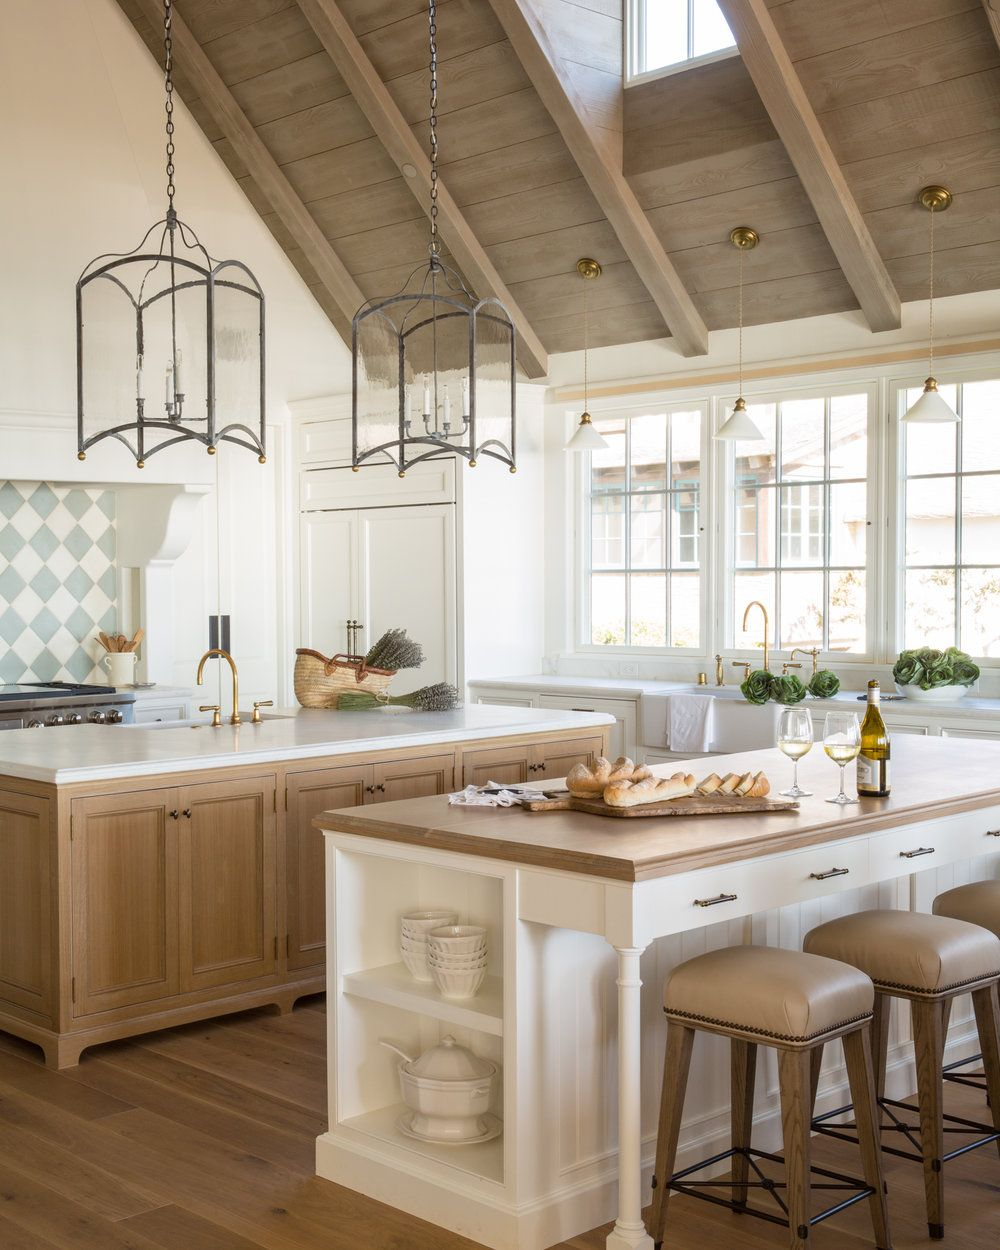 Oceanside A Home In Malibu Country Kitchen Designs Home Decor